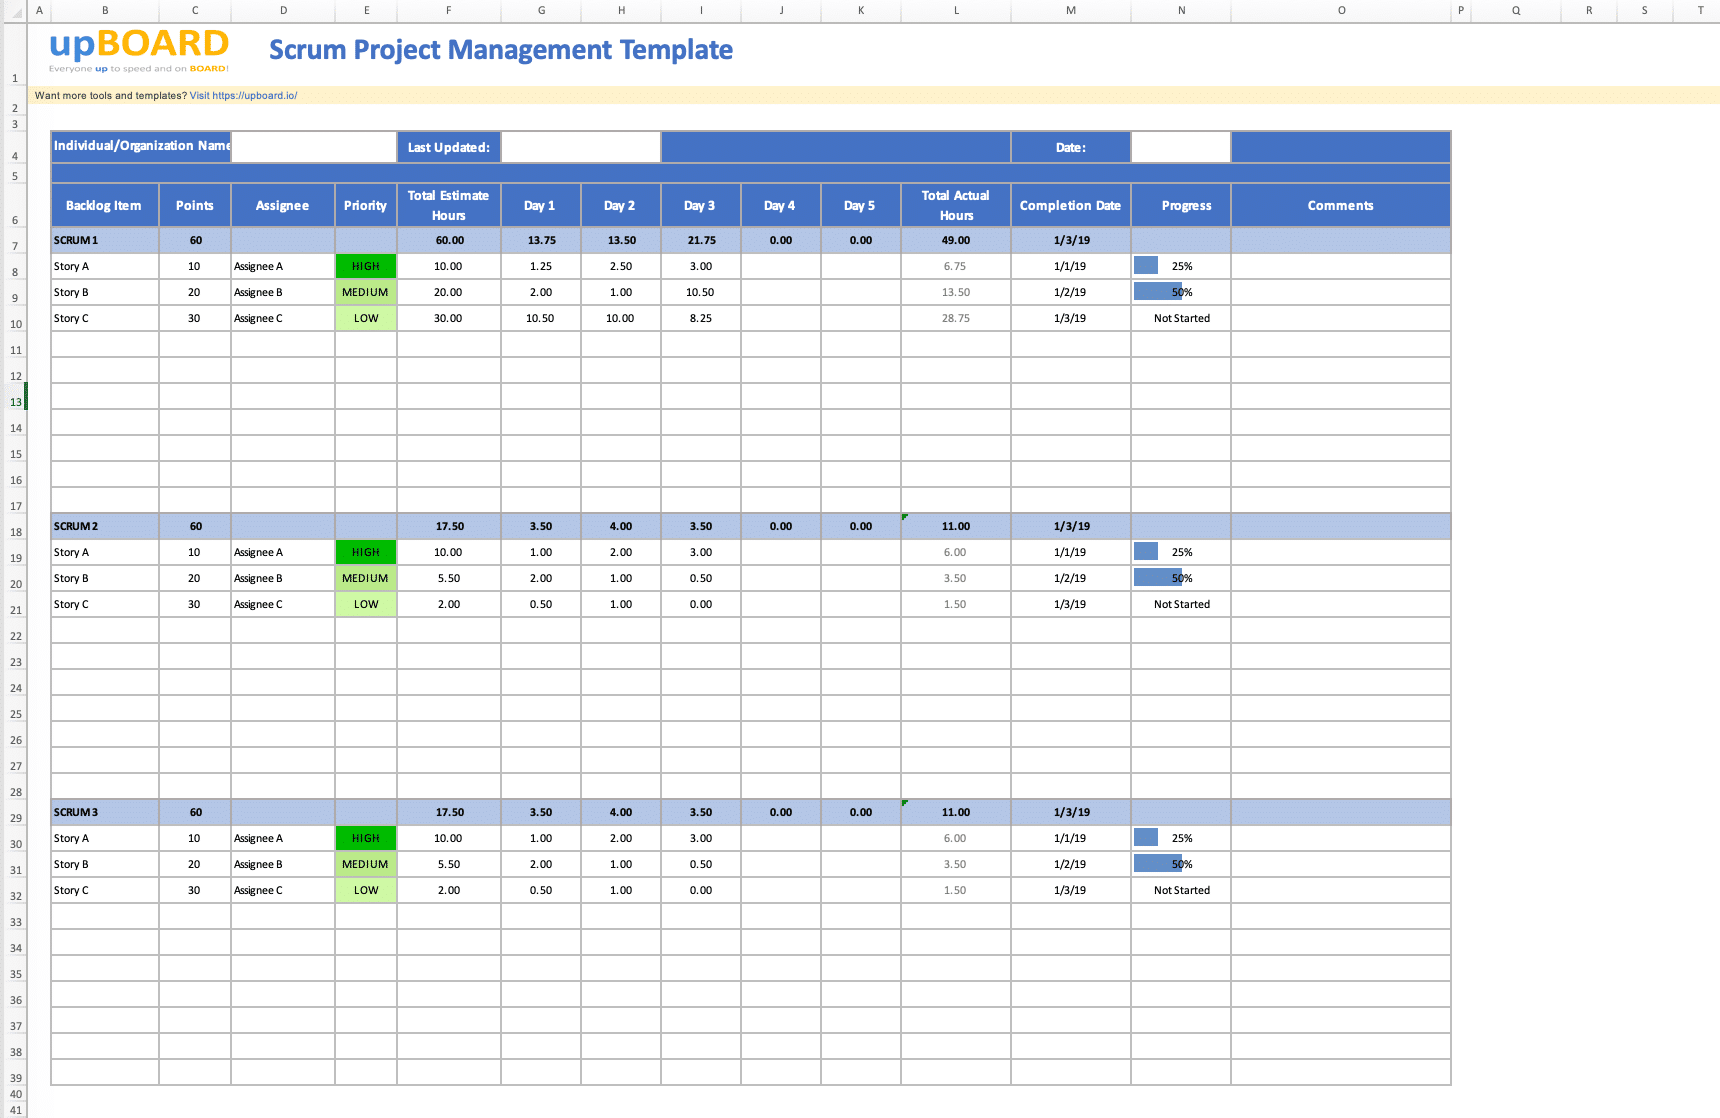 Use these sample senior project manager interview questions to identify potential hires for your open roles. Scrum Project Management Online Software Tools Templates